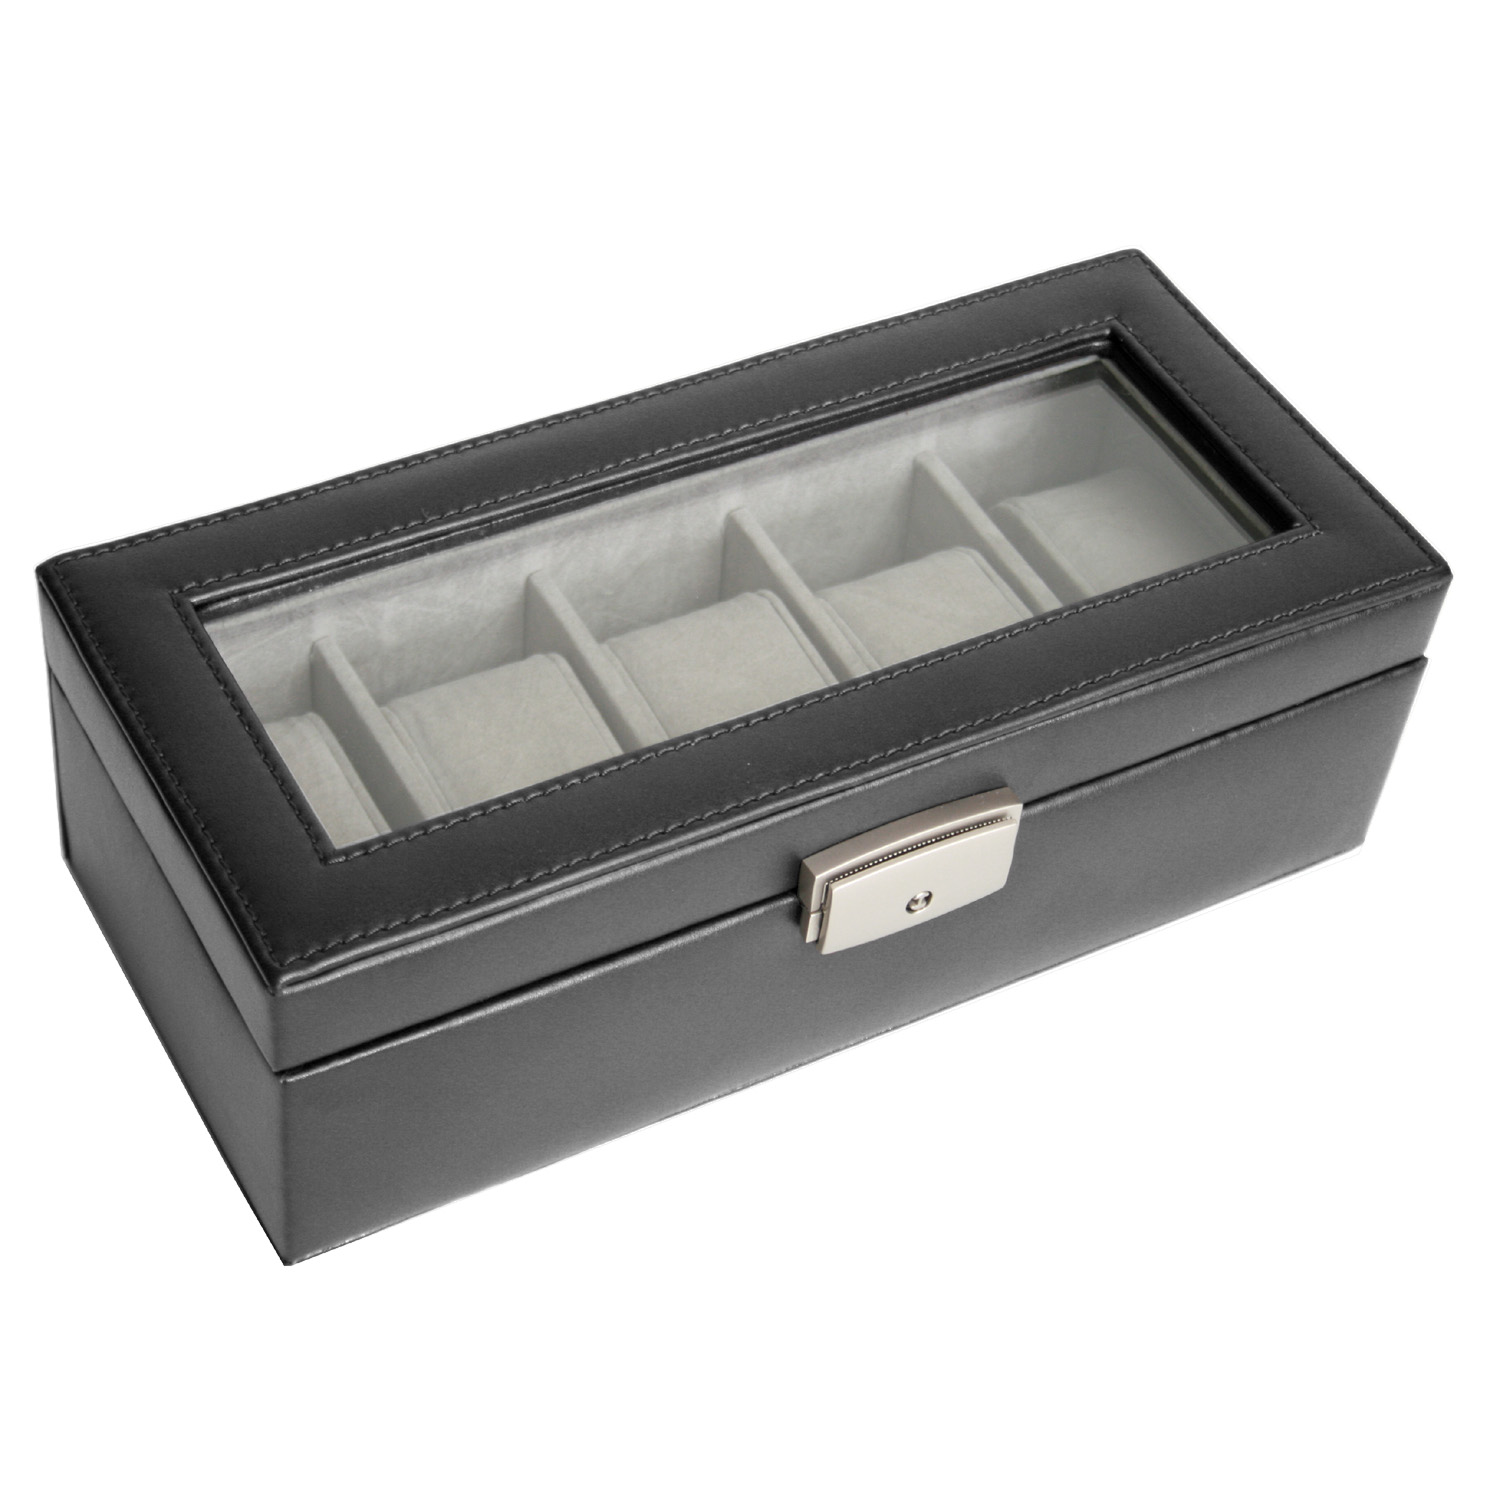 5 Slot Watch Box Display Case in Genuine Leather